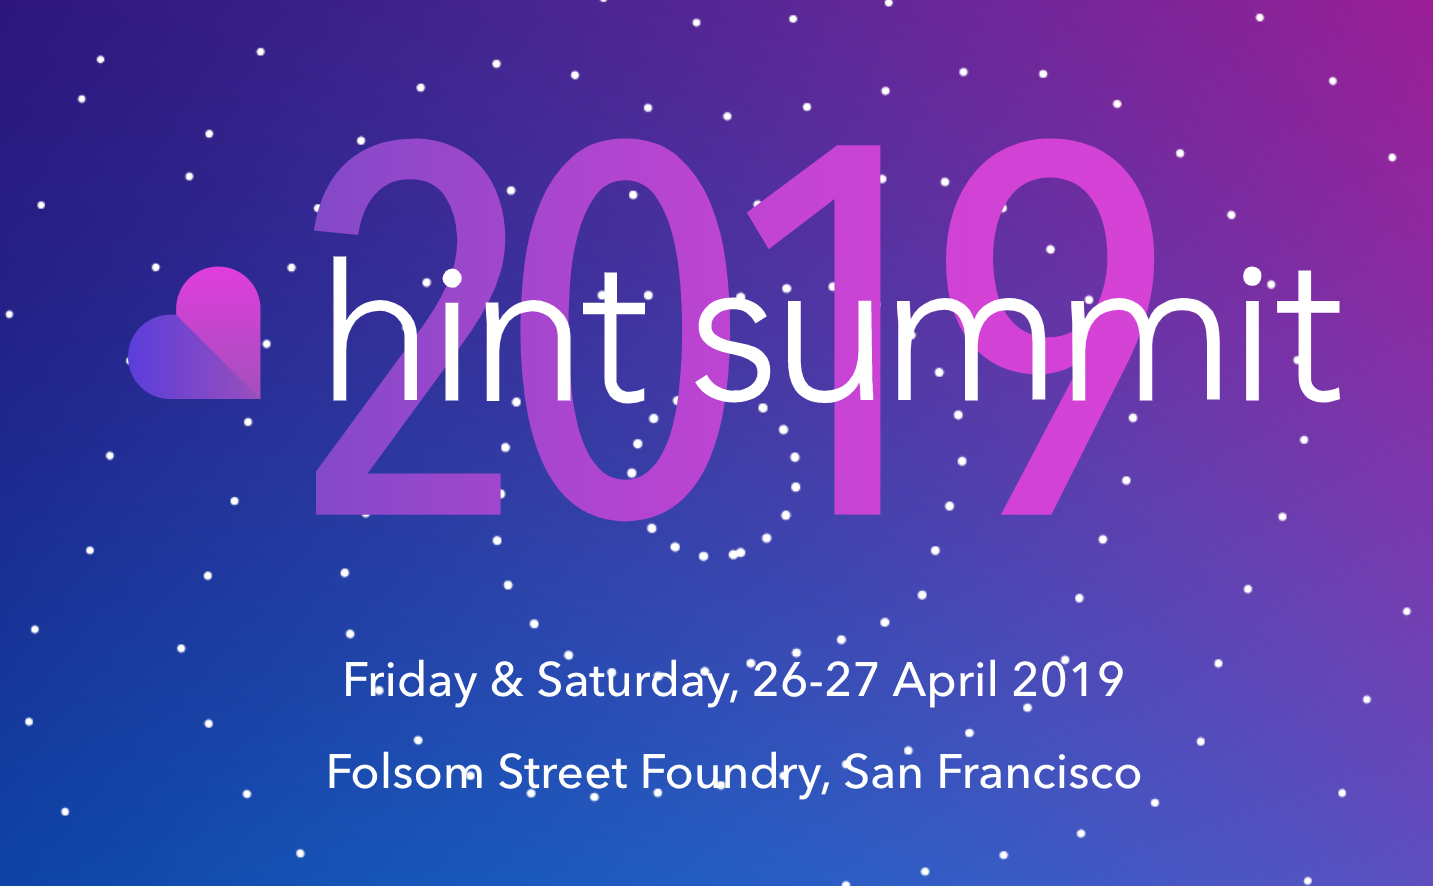 What's Hint Summit 2019 About?